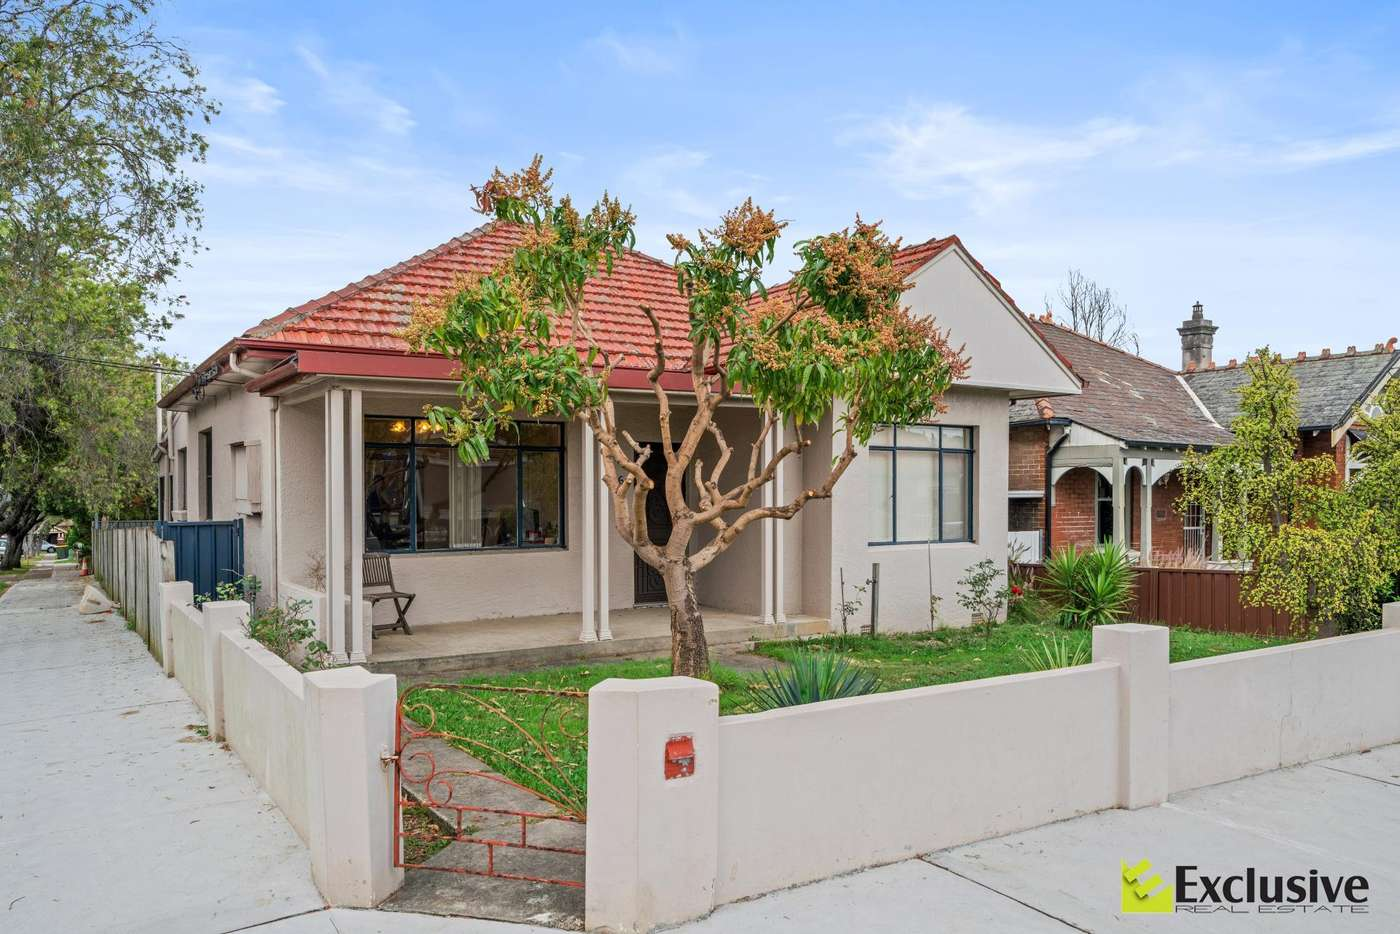 Main view of Homely house listing, 6 Broughton Street, Concord NSW 2137